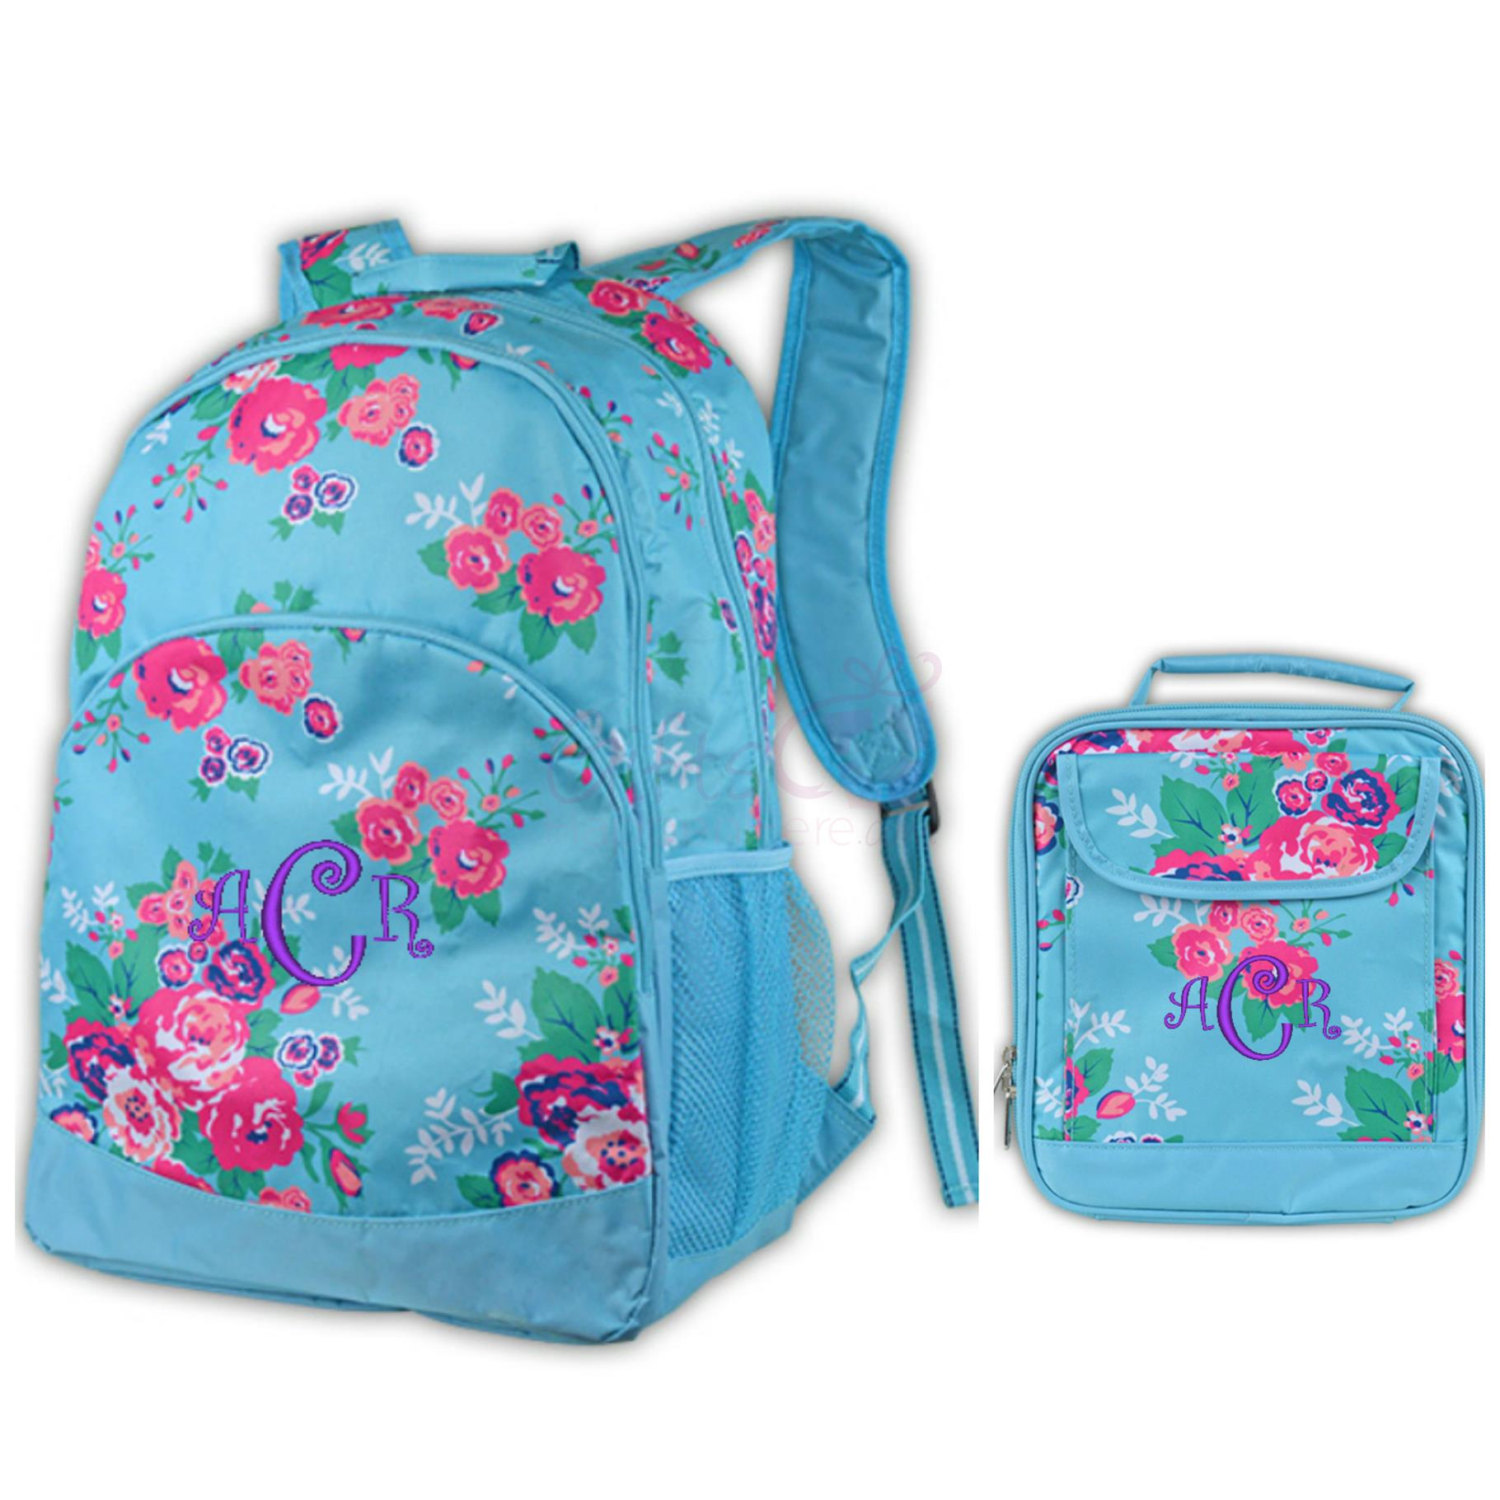 Personalized Kids Backpacks A5BEhcKD